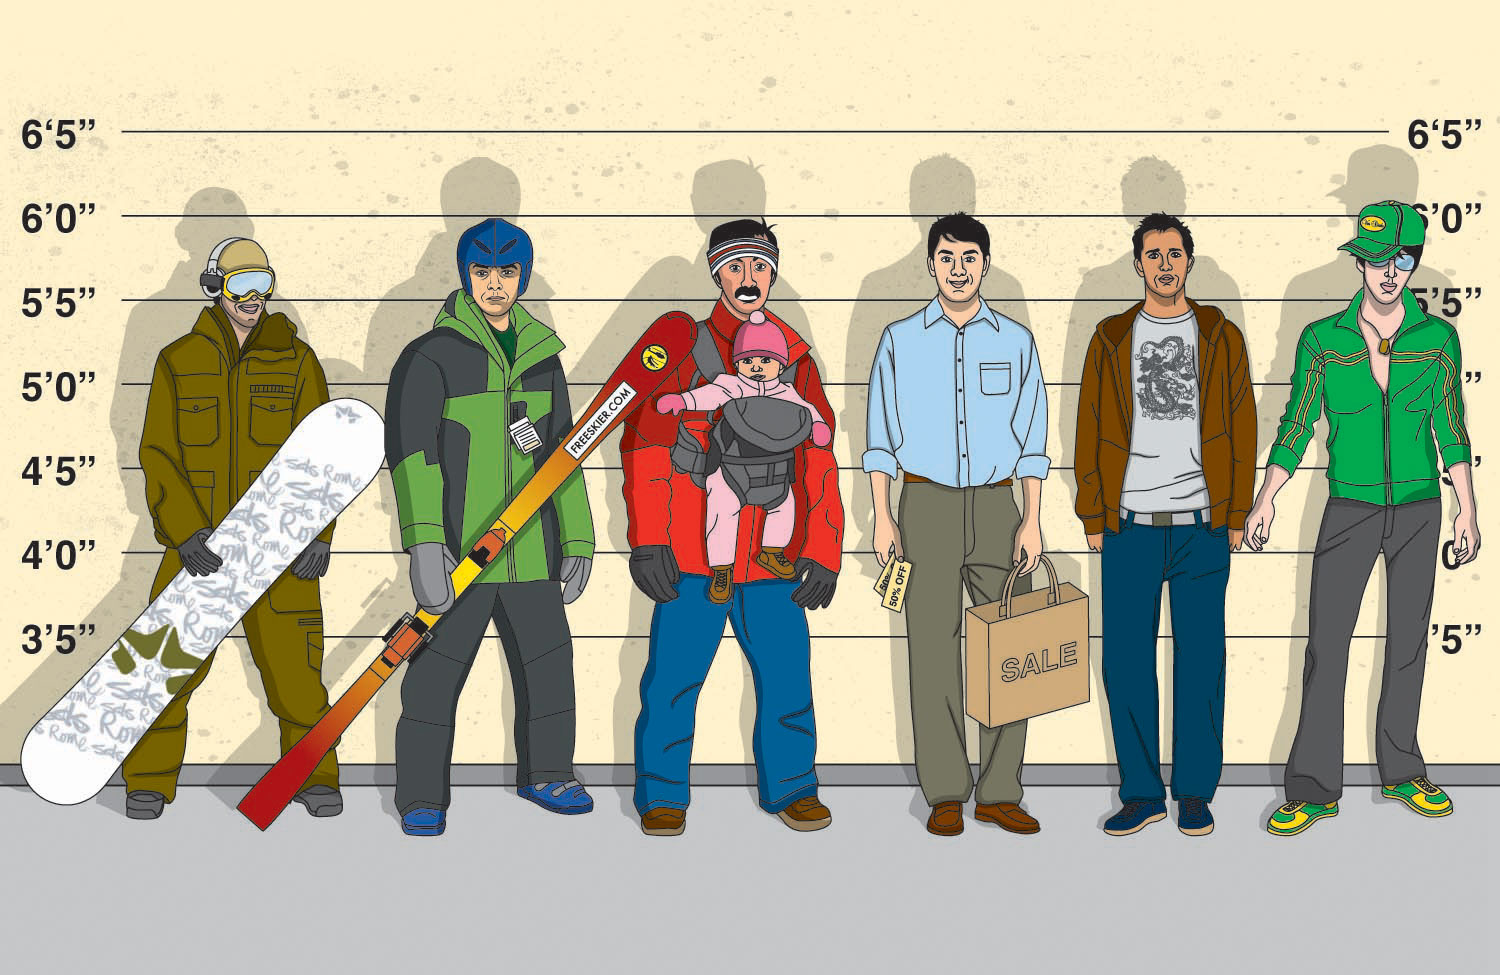 illustration-People_How_to_hallie_hansen_snow_boarders_in_clothing_line_up-Jib Hunt